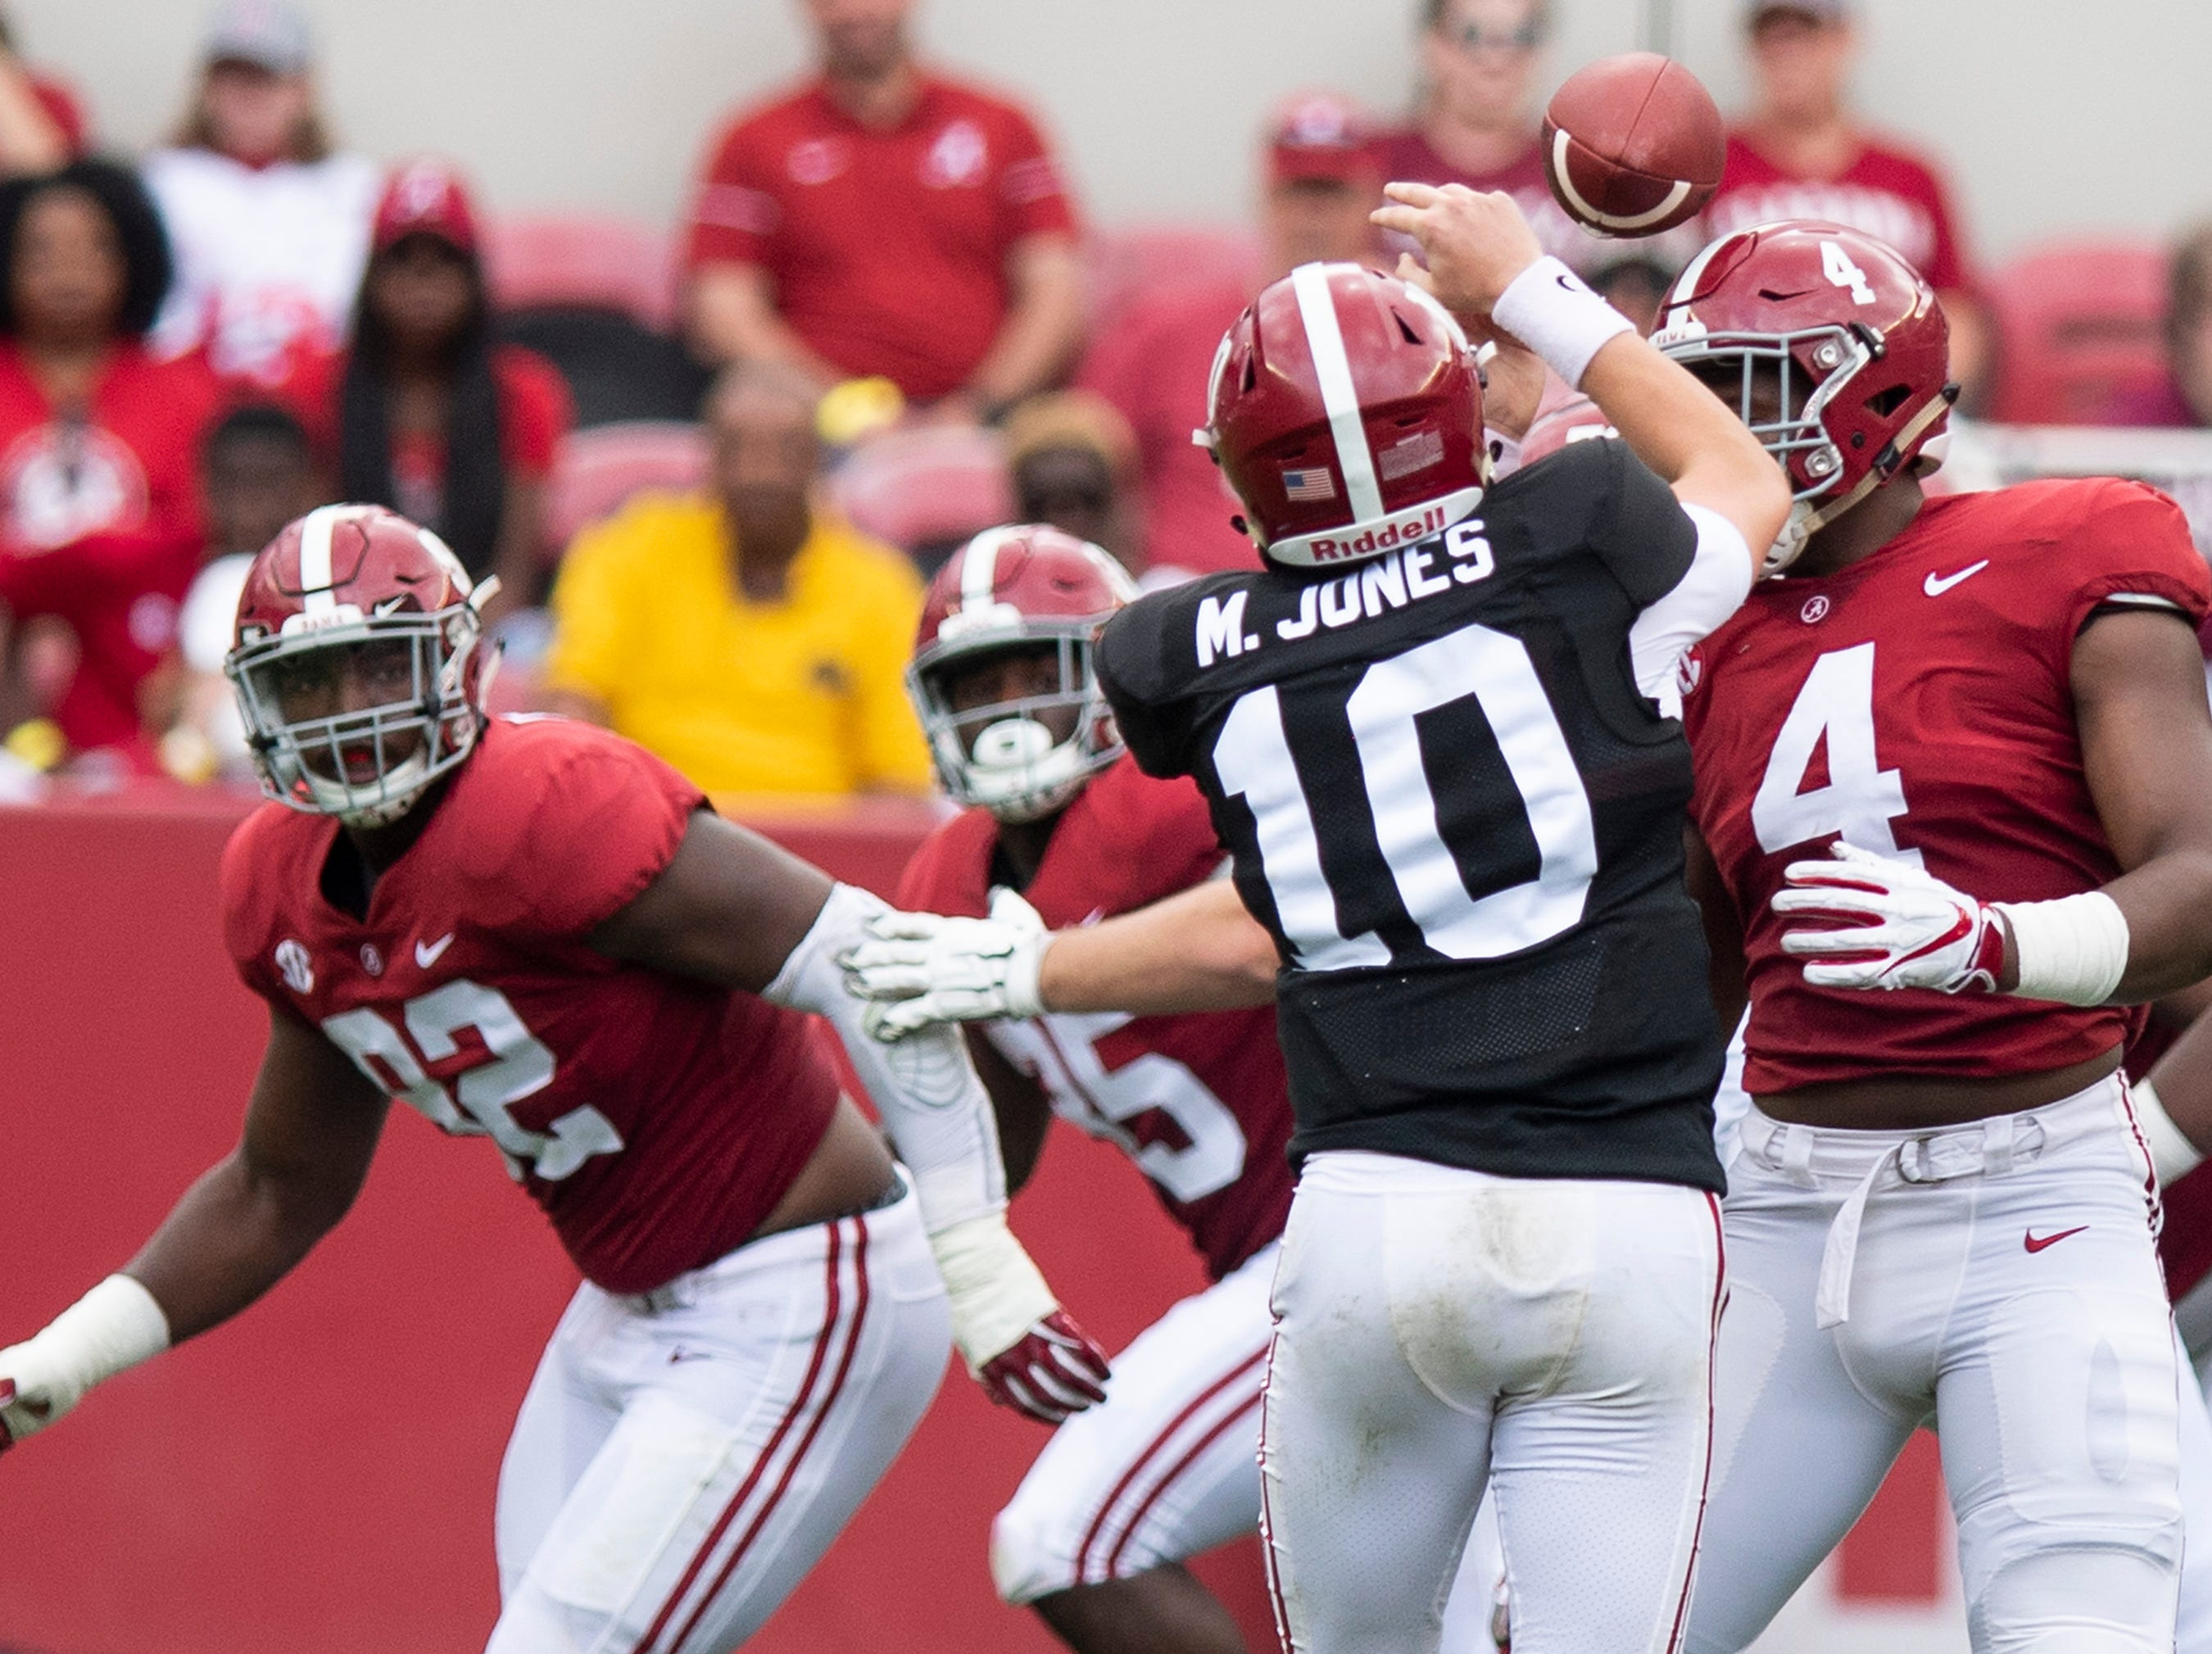 Linebacker Christopher Allen (4) breaks up a pass by quarterback Mac Jones (10) during first half action in the Alabama A-Day spring football scrimmage game at Bryant Denny Stadium in Tuscaloosa, Ala., on Saturday April 13, 2019.